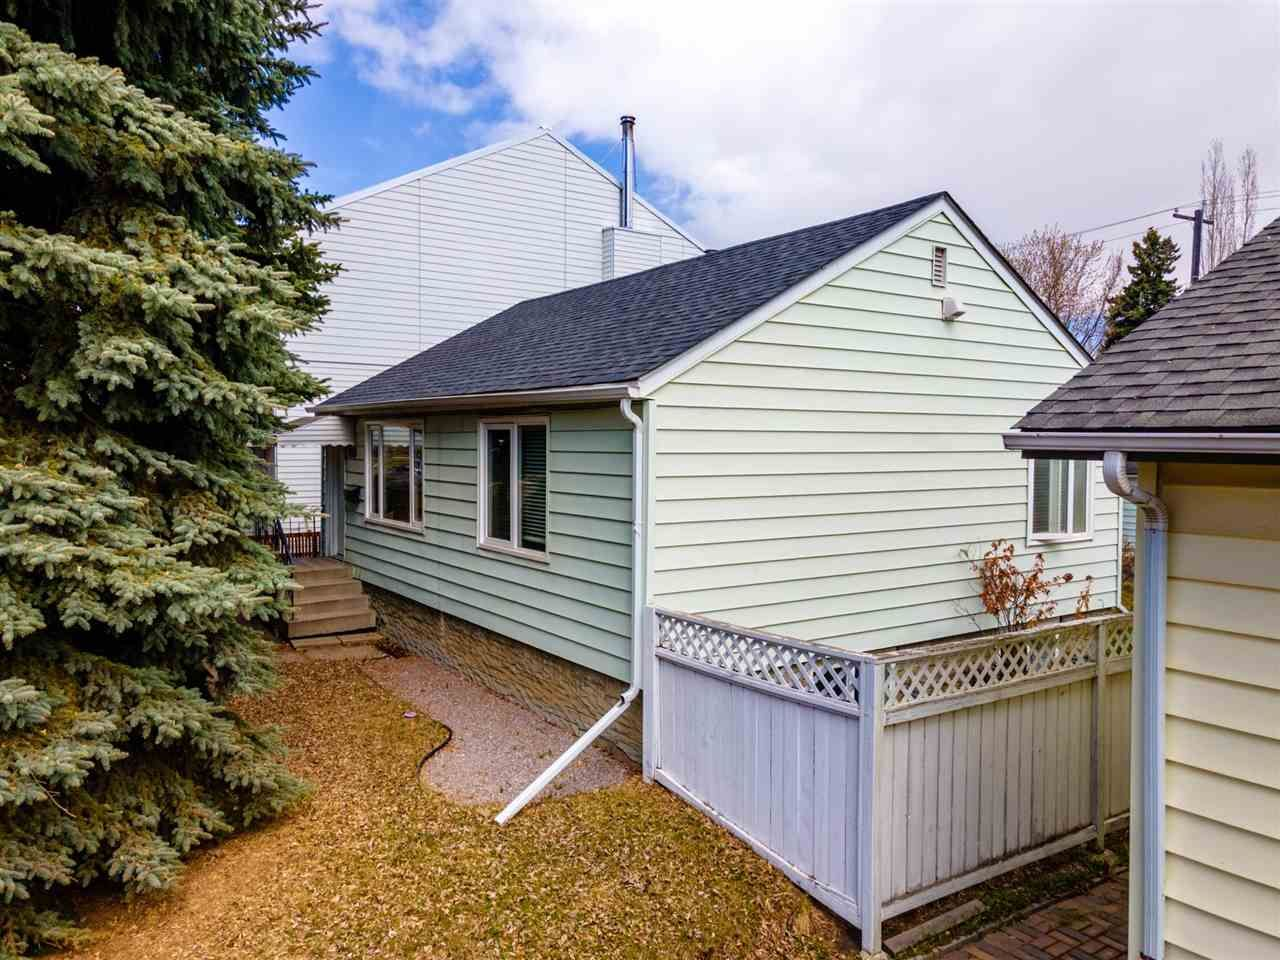 Main Photo: 9215 91 Street in Edmonton: Zone 18 House for sale : MLS®# E4241987